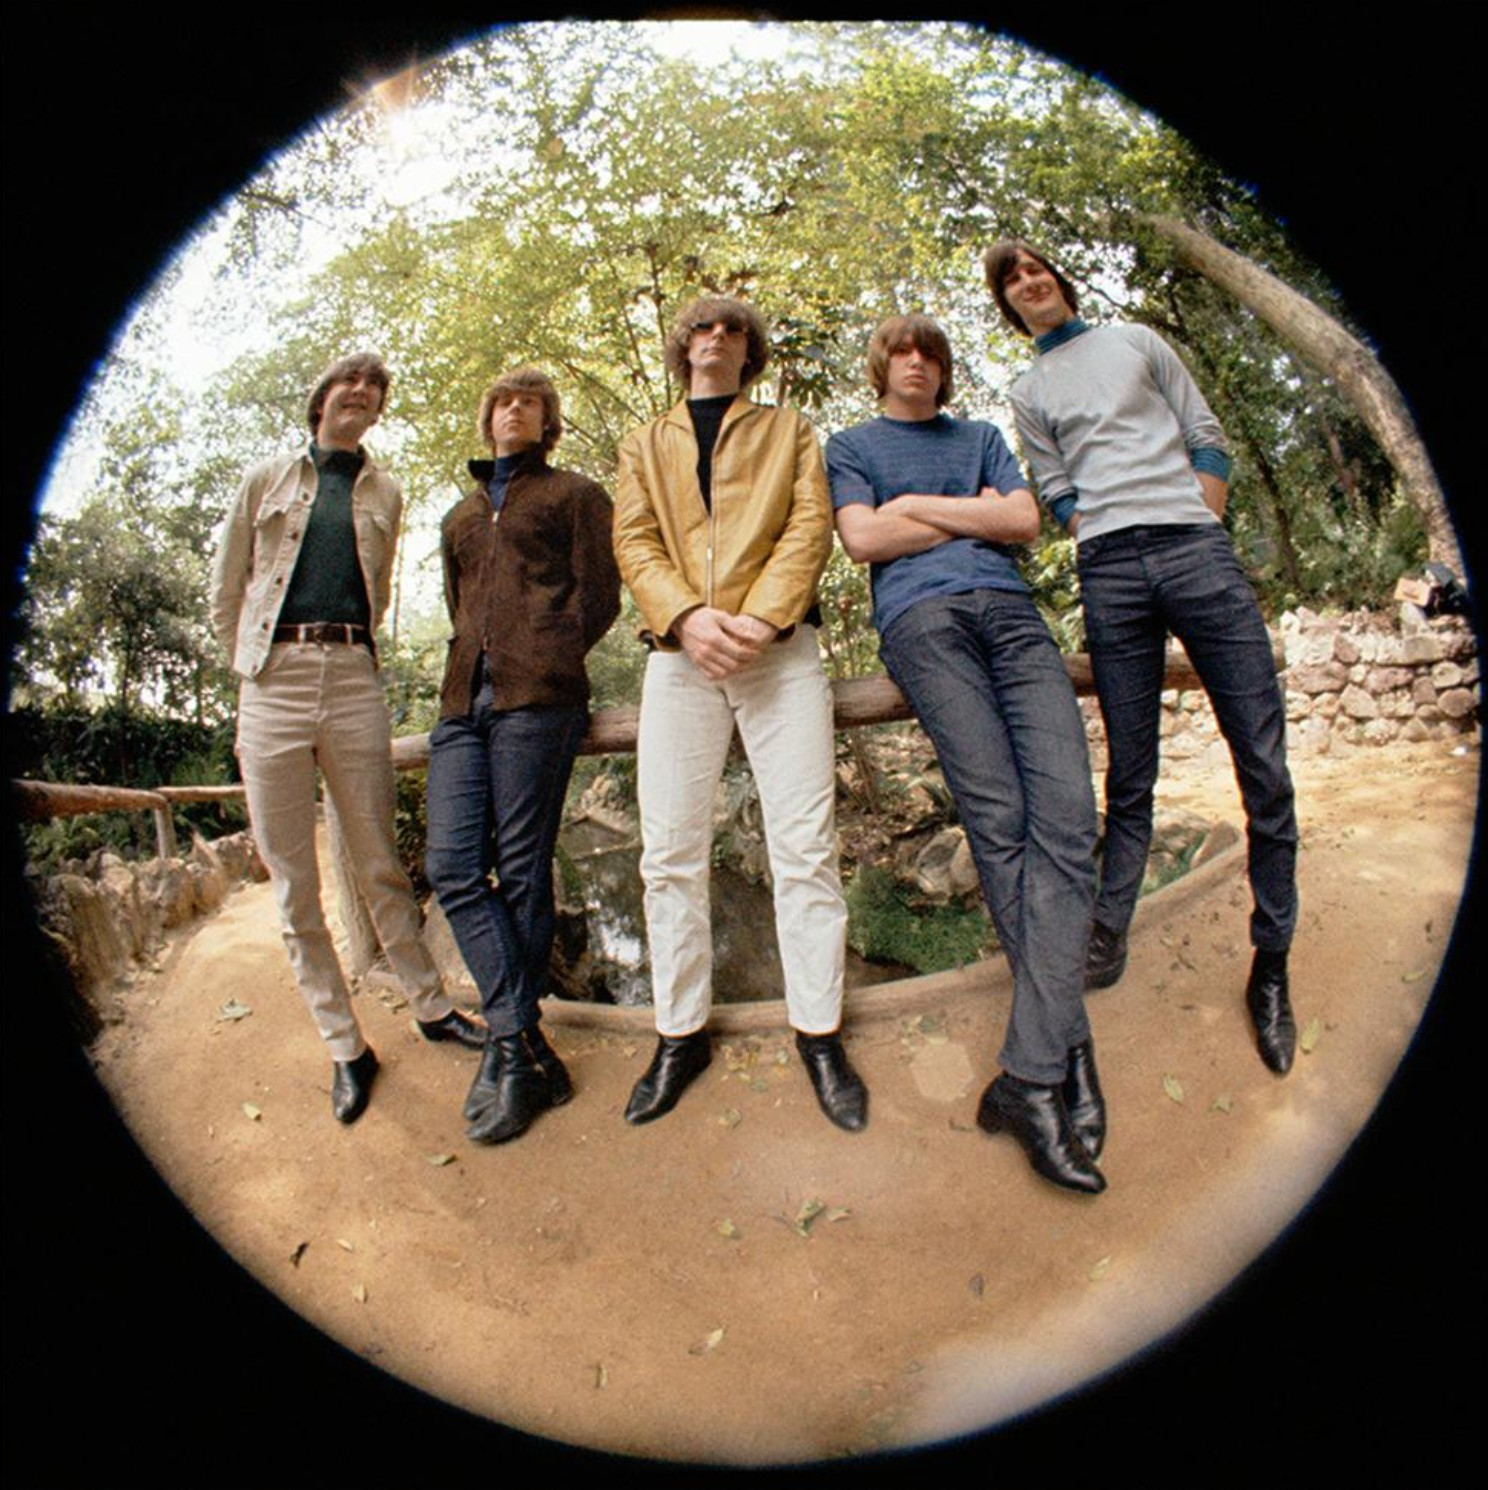 The Byrds, music photo history